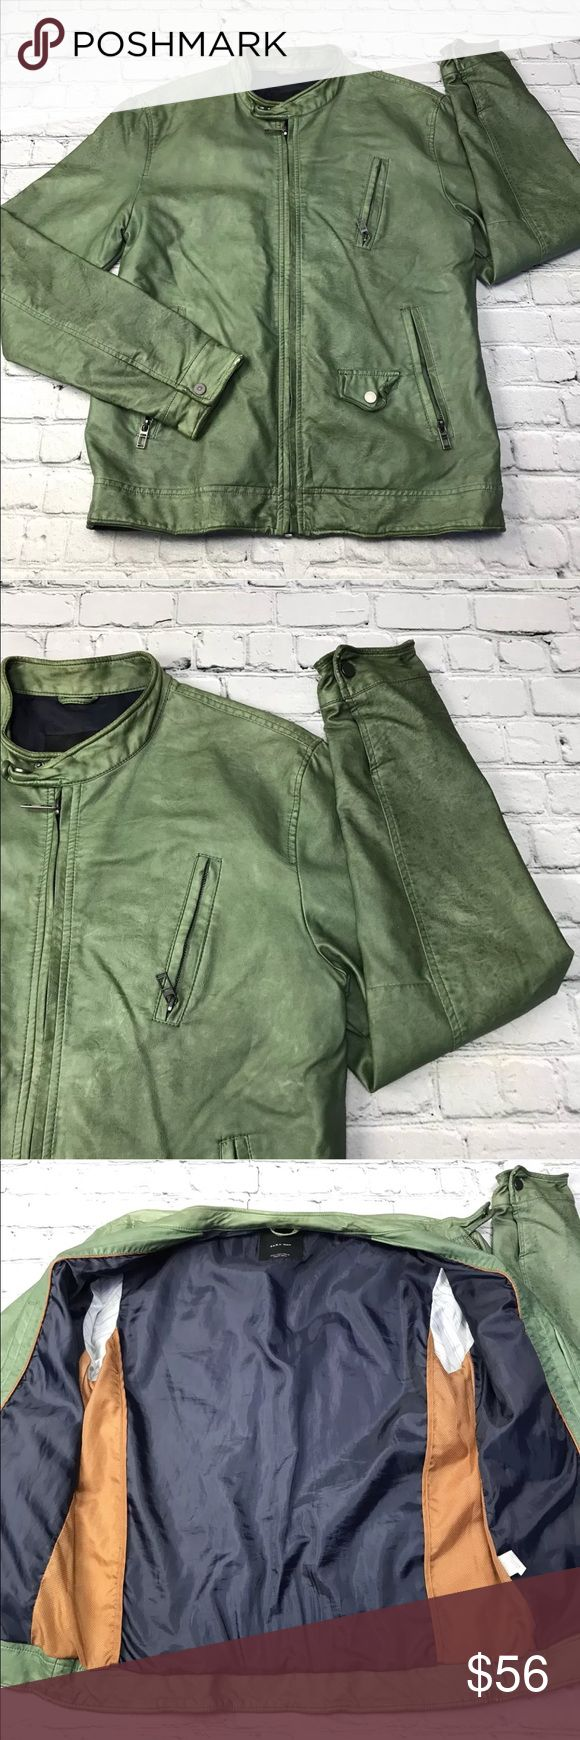 """Zara Man Vegan Leather Moto Jacket Zara Basic Mens Jacket Motorcycle Moto Vegan Leather HTF Green L. Distressed, please see photos.   Measurements ~Chest: 21""""  Length: 28""""   Condition:Gently used Measurements are taken as follows: Chest~ laid flat, no stretching, underarm to underarm. Length: laid flat, measured from waistband or shoulder to bottom front hem. No tears, holes, stains, fading or defects unless otherwise noted. I accept all reasonable offers!! Thanks for shopping…"""